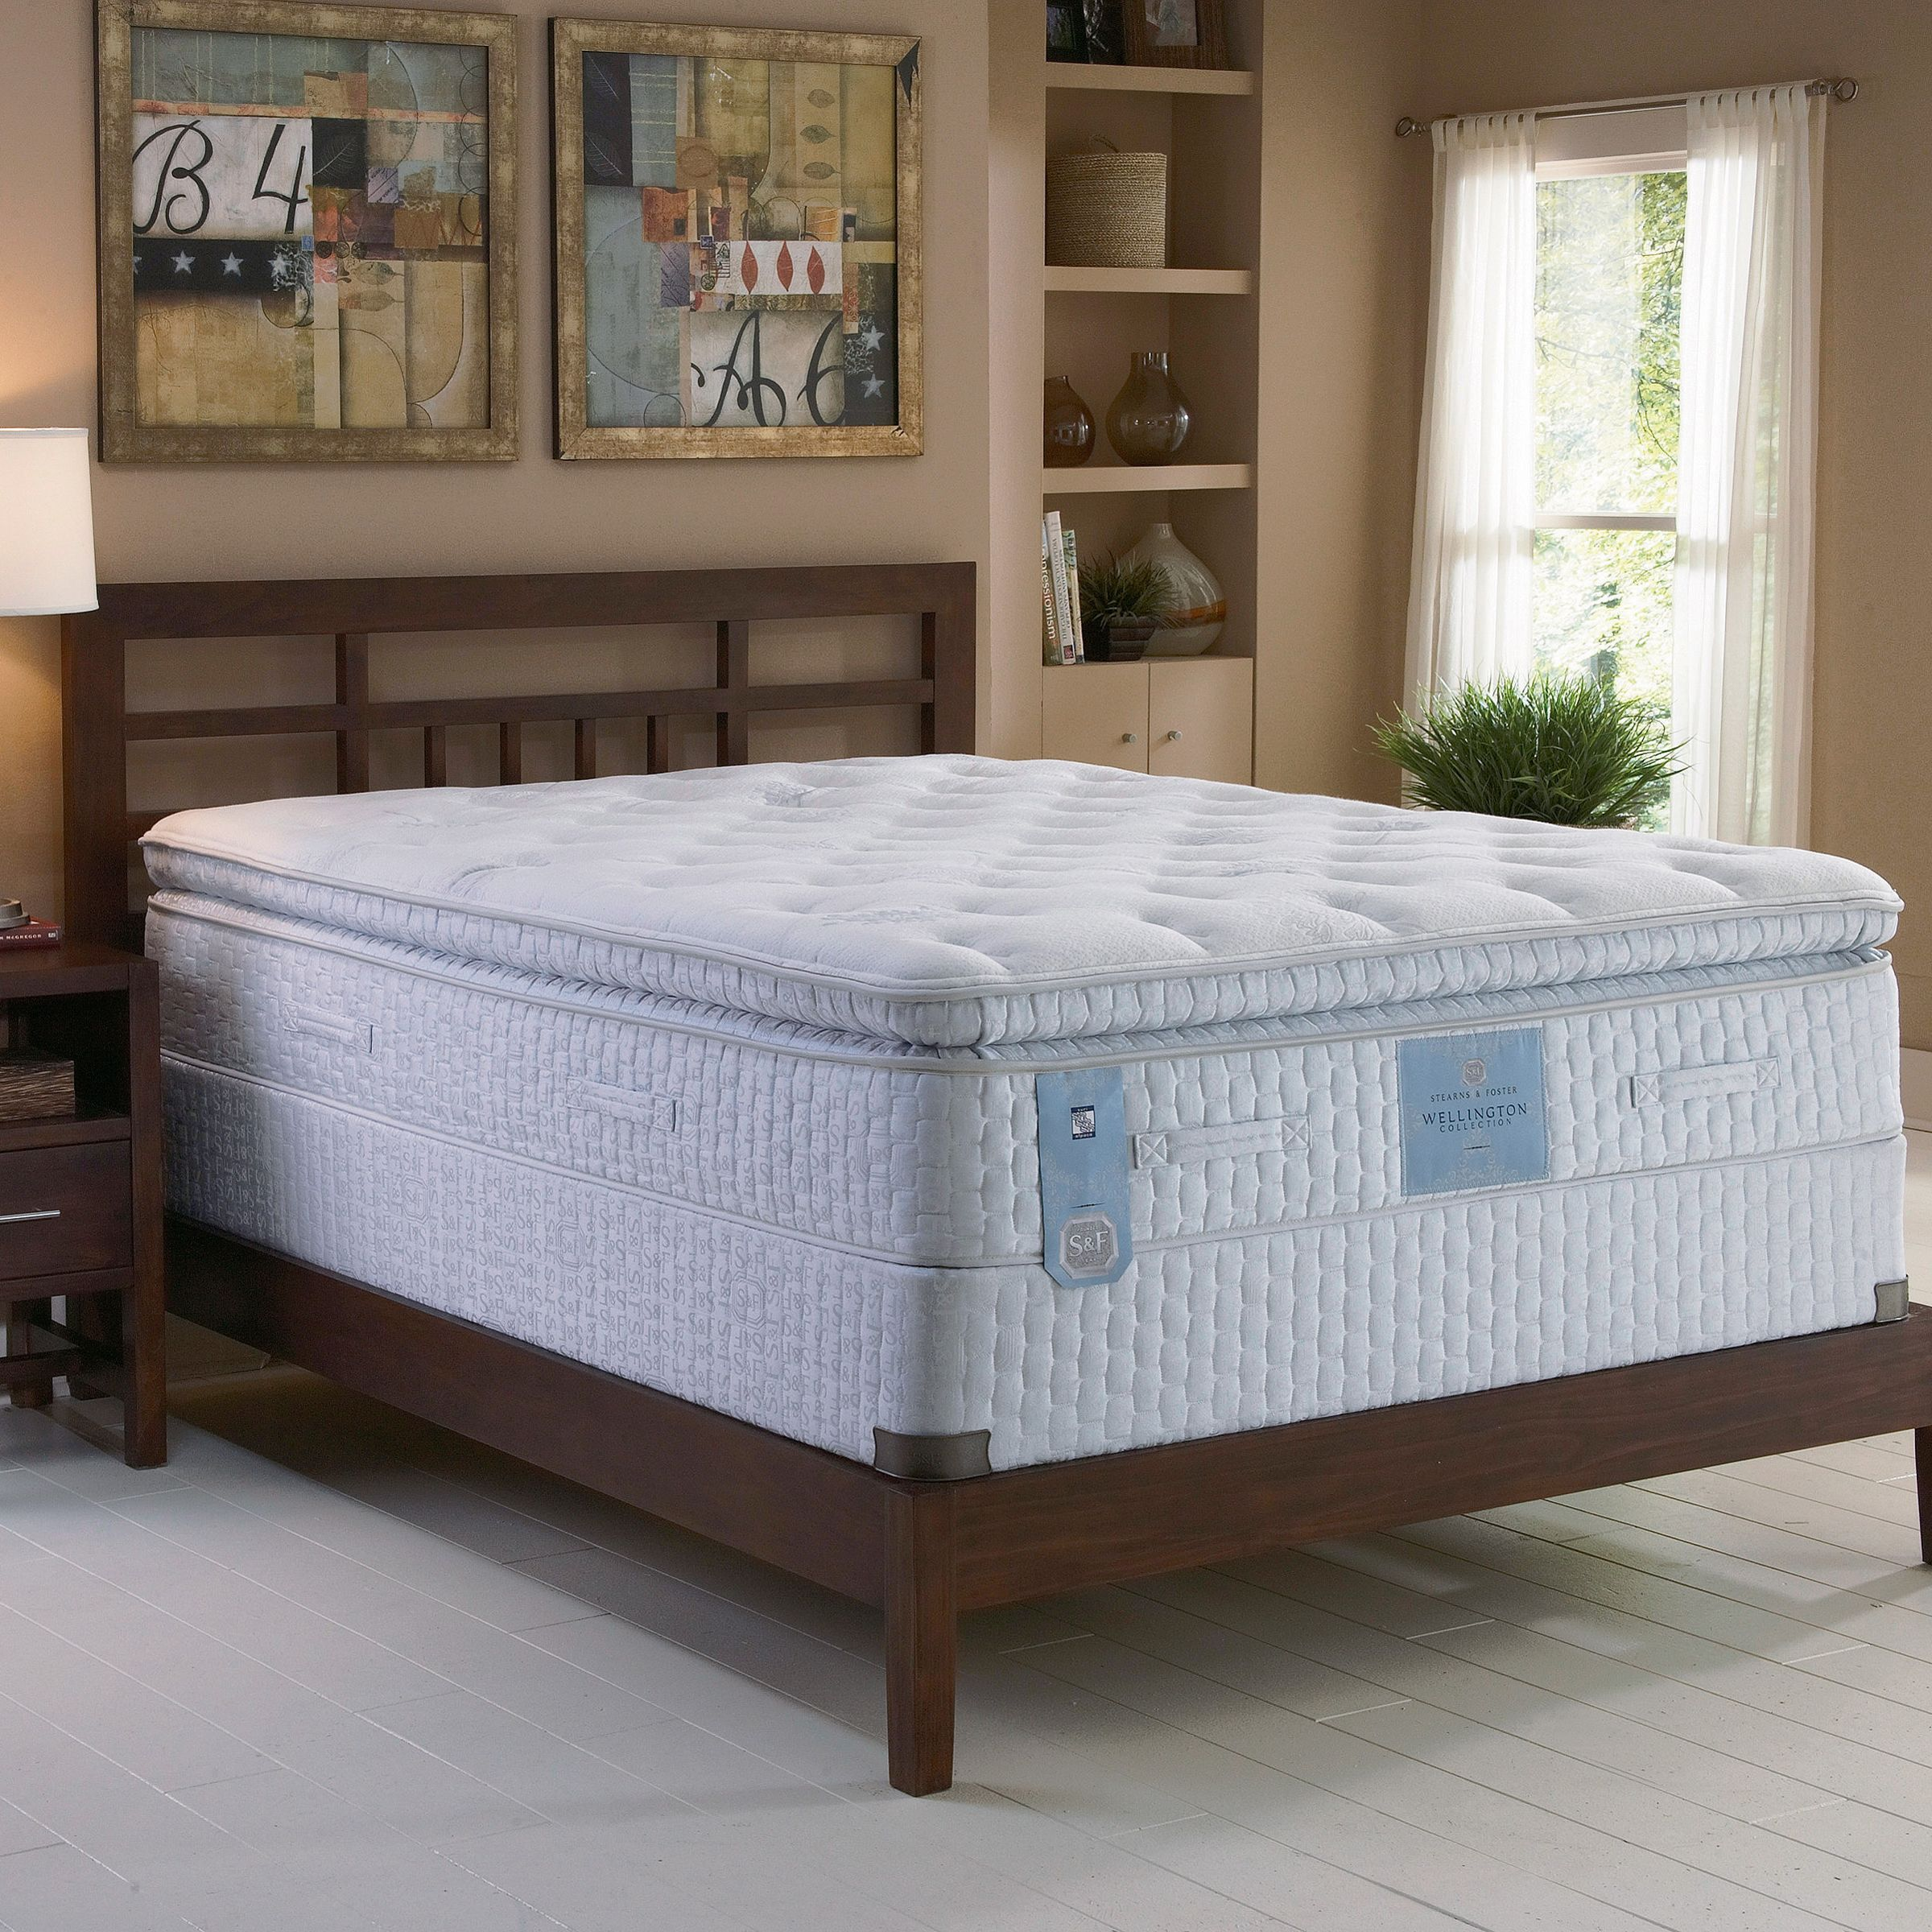 Stearns & Foster Delinda Plush Euro Pillowtop West Coast King Mattress ONLY